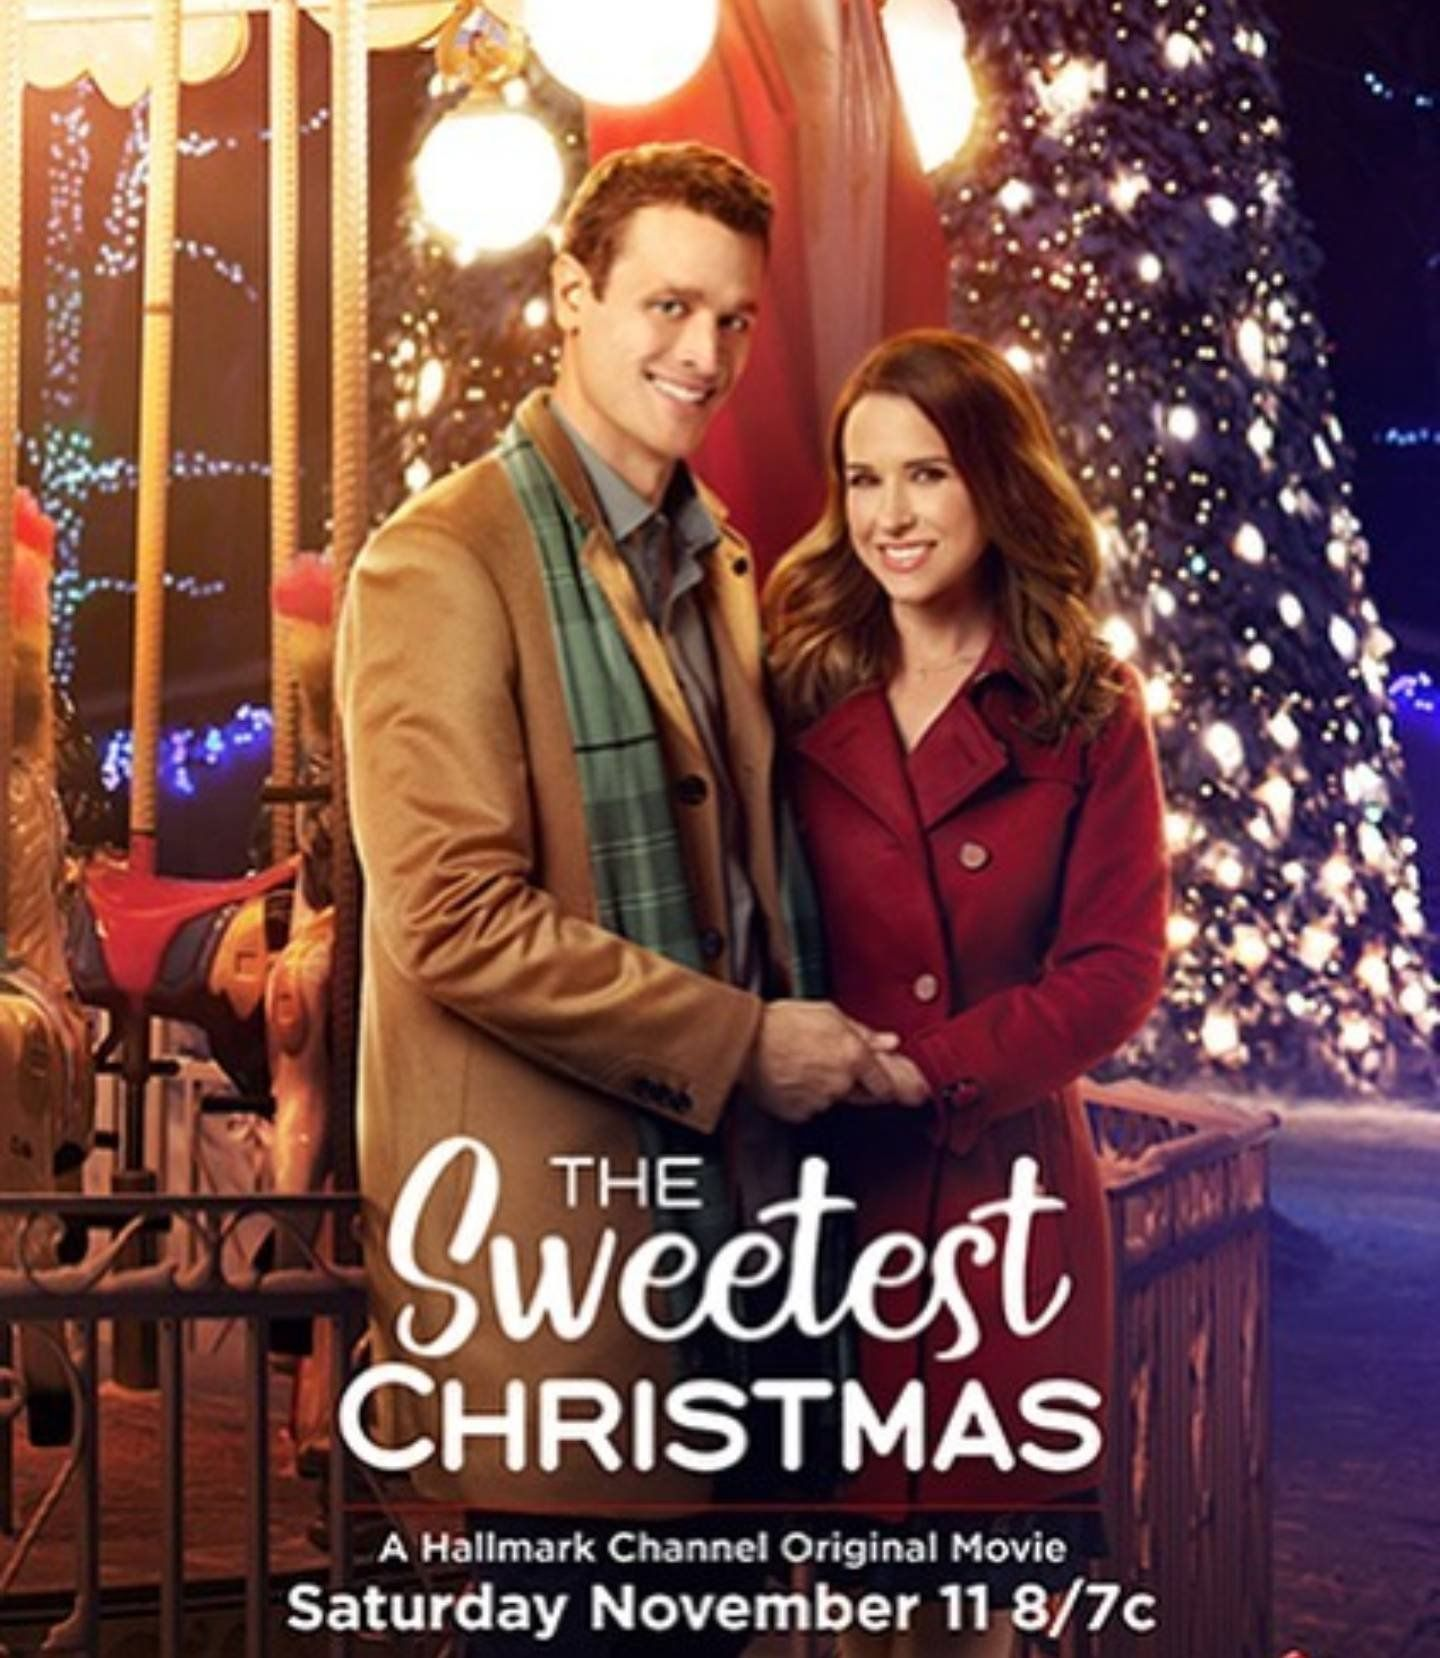 Pin By Sonitta On Christmas Movies I Watched Christmas Movies Streaming Movies Full Movies